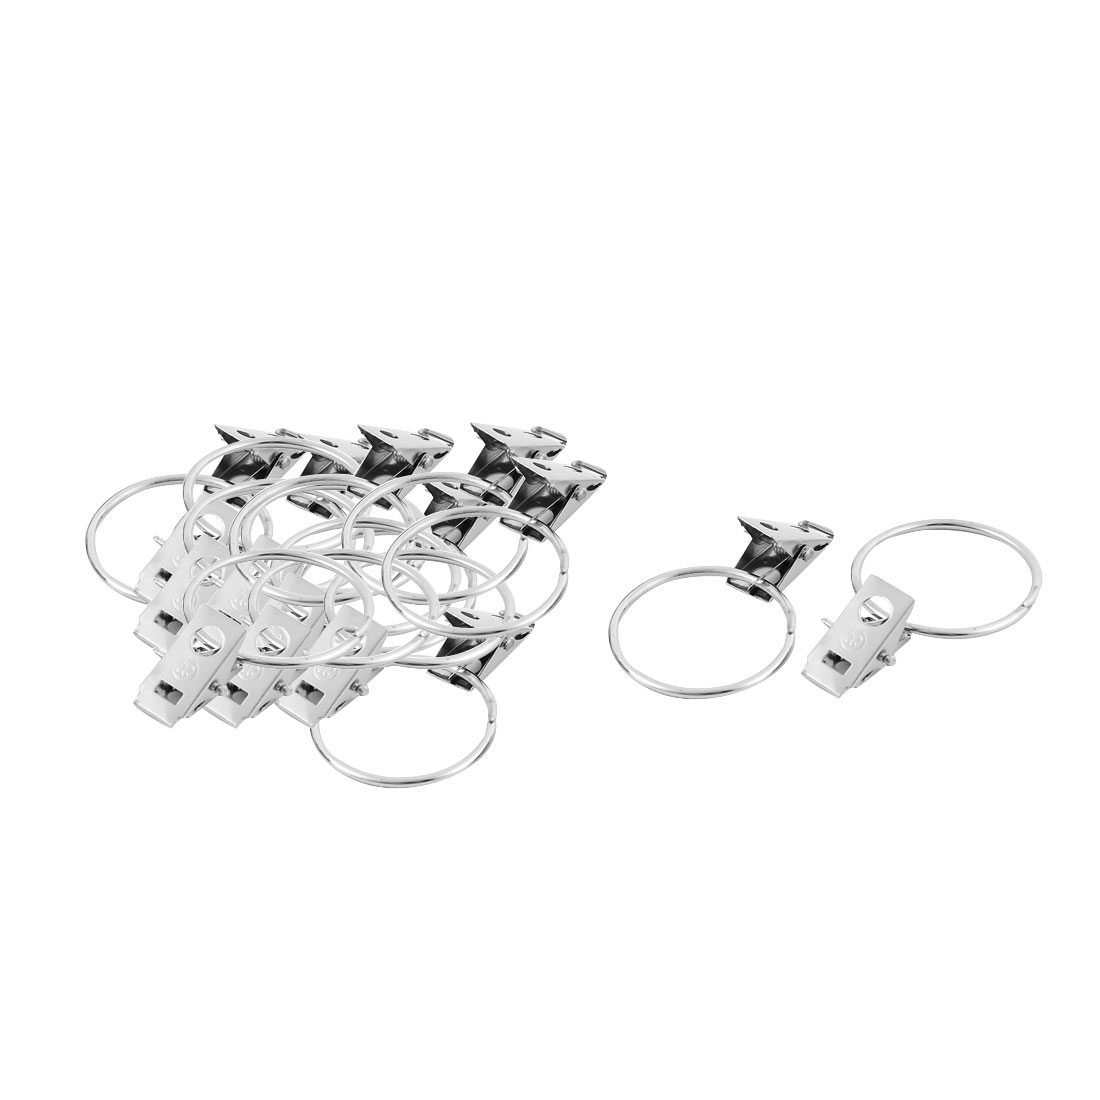 16 Pcs Metal Hooks Sprung Curtain Clothes Clips Clamps 36mm Dia Ring